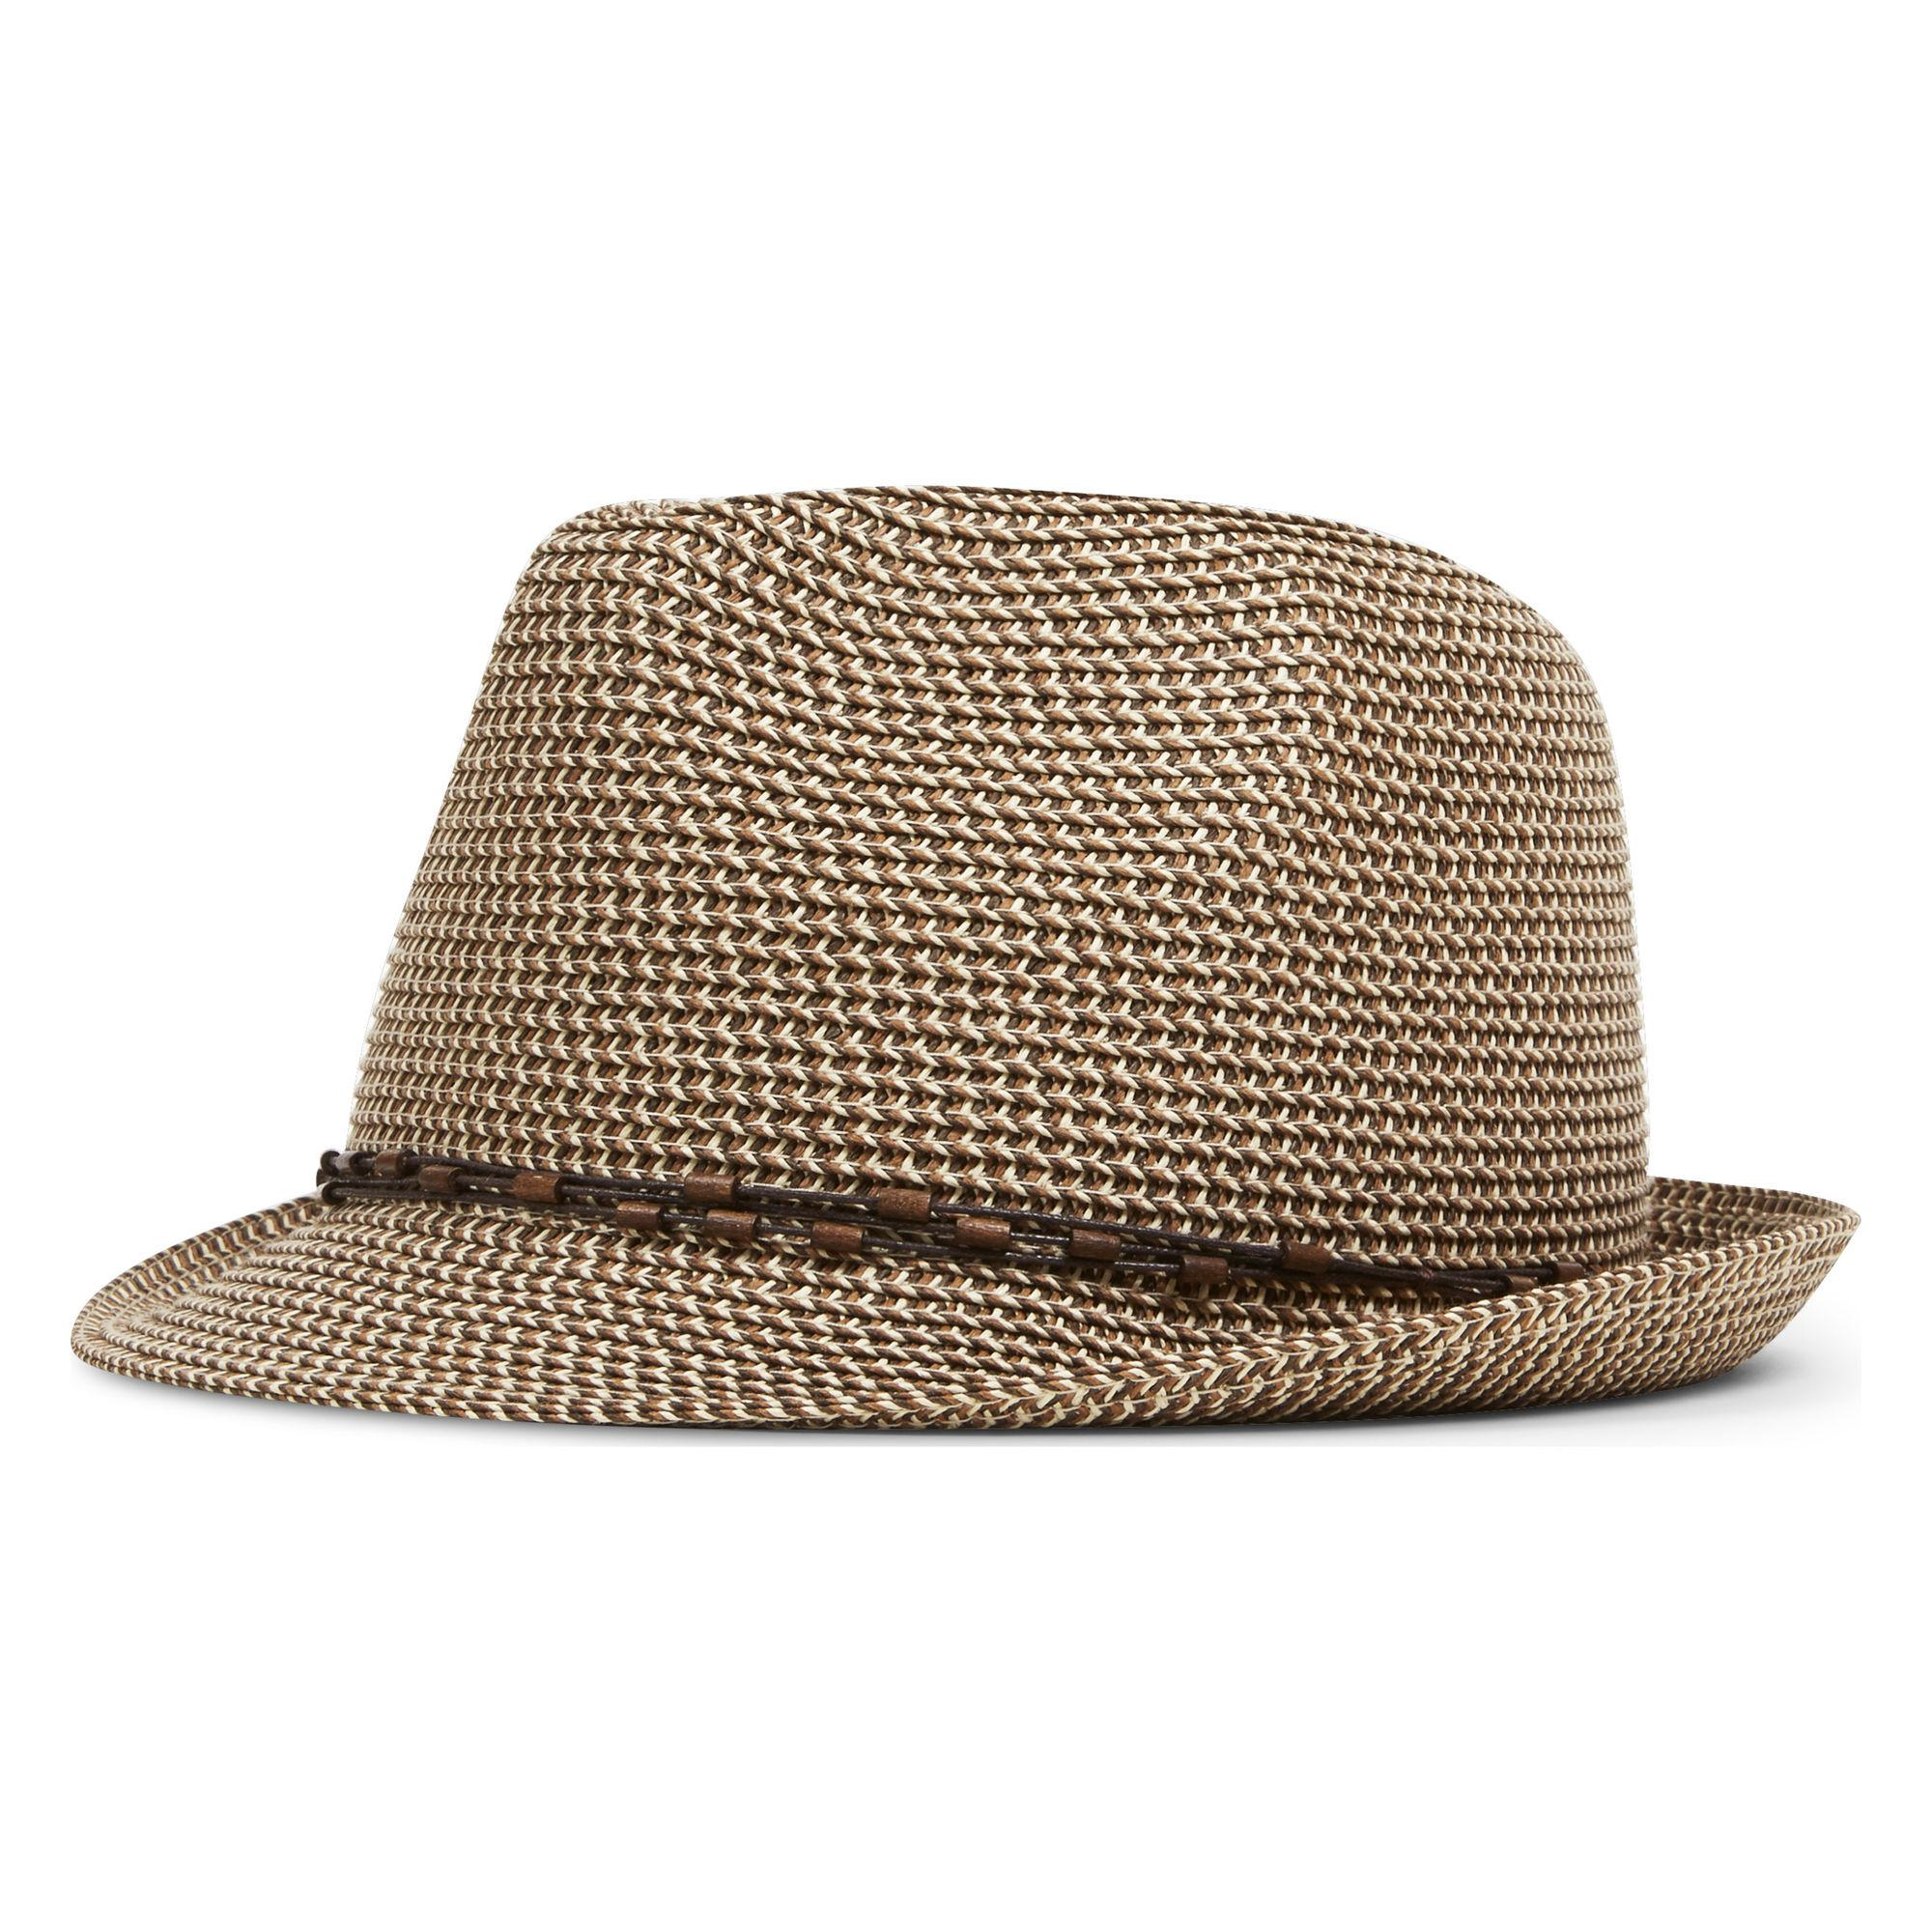 Lyst - Nine West Packable Classic Fedora in Brown 74feac60157